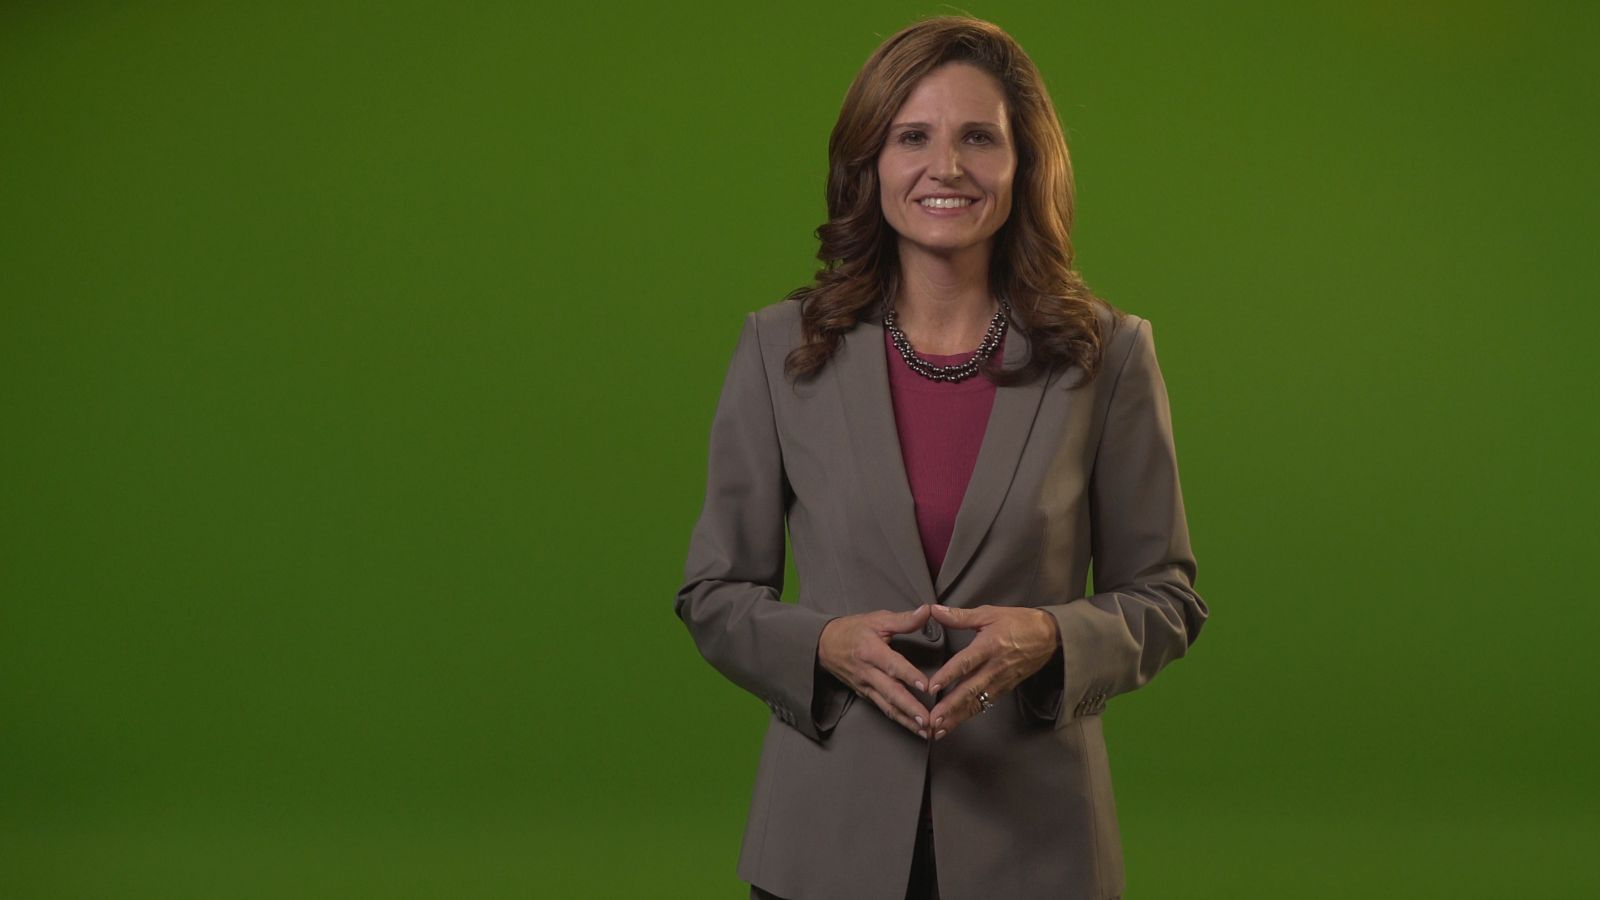 green screen employee training with spokesmodel in fairfax virginia